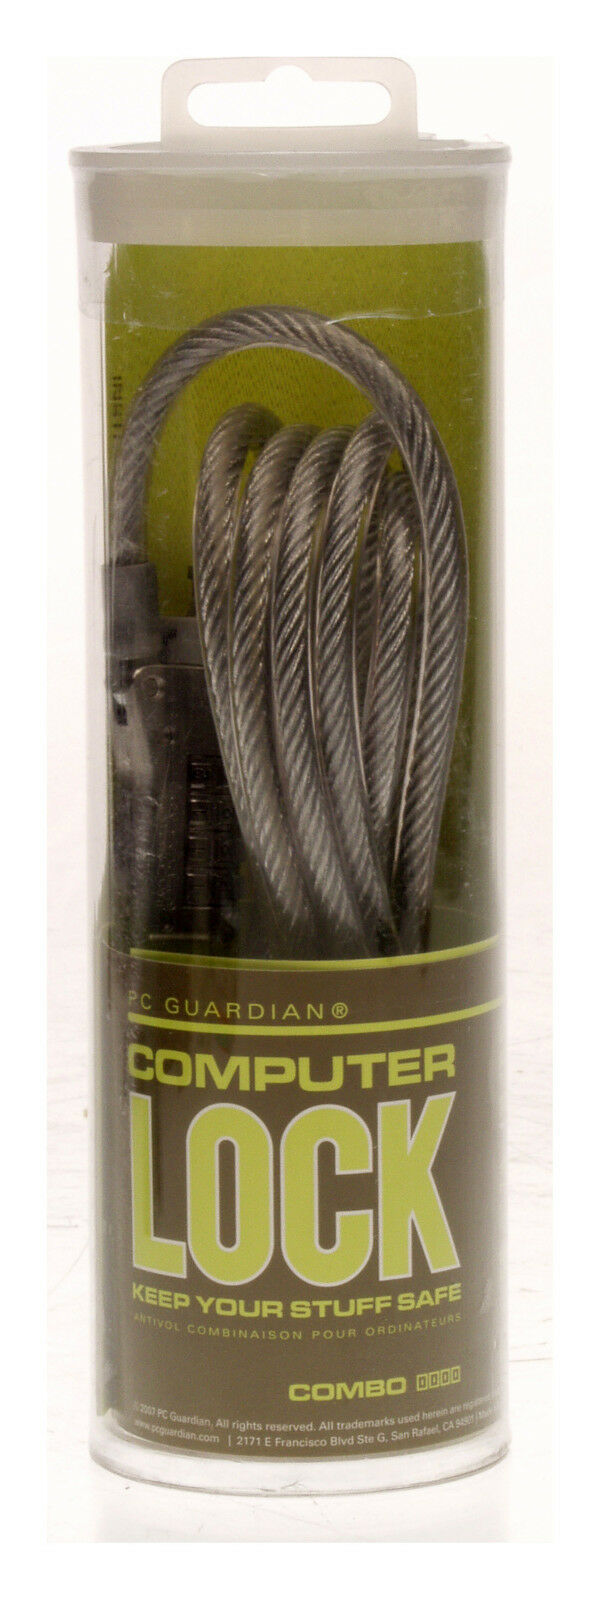 PC Guardian Computer Combination Lock Security 6' Cable Silver 22PS-70 * NEW-www.prostudioconnection.com